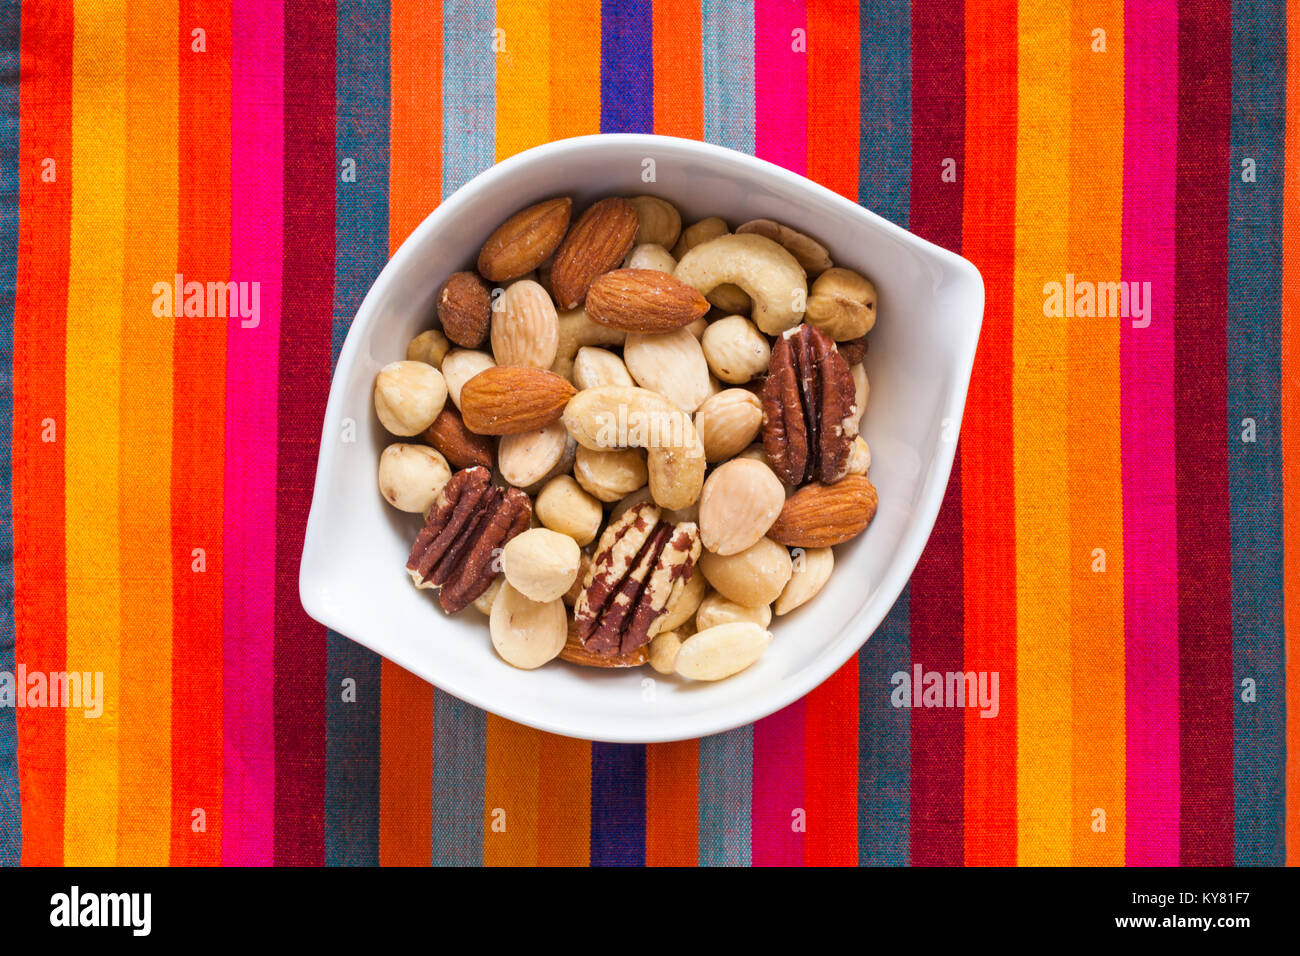 White bowl of Tesco finest roasted nut selection on colorful striped background. Mixed roasted nuts delicately seasoned - Stock Image